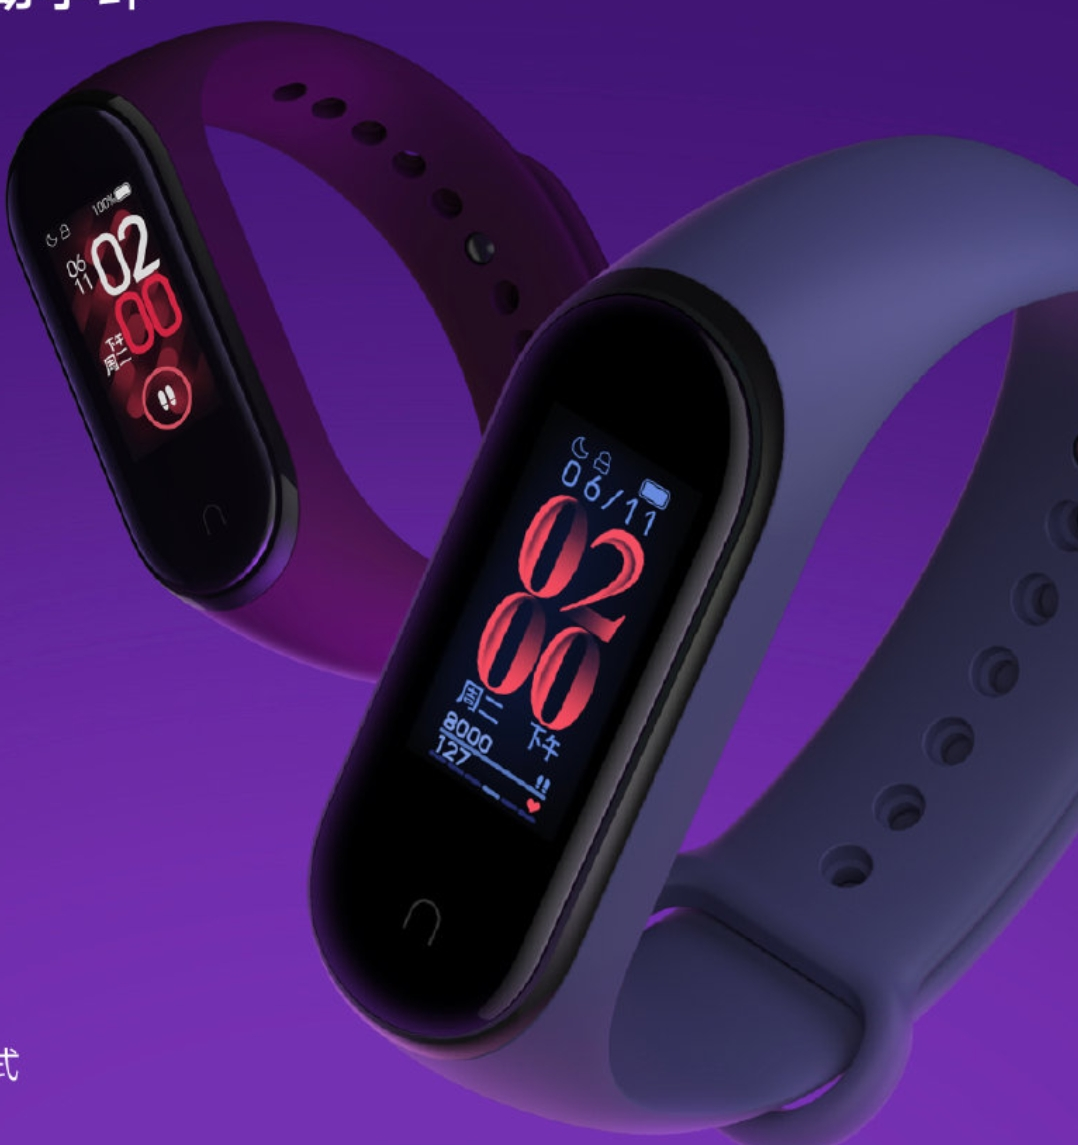 Mi Band 4 fitness band launched